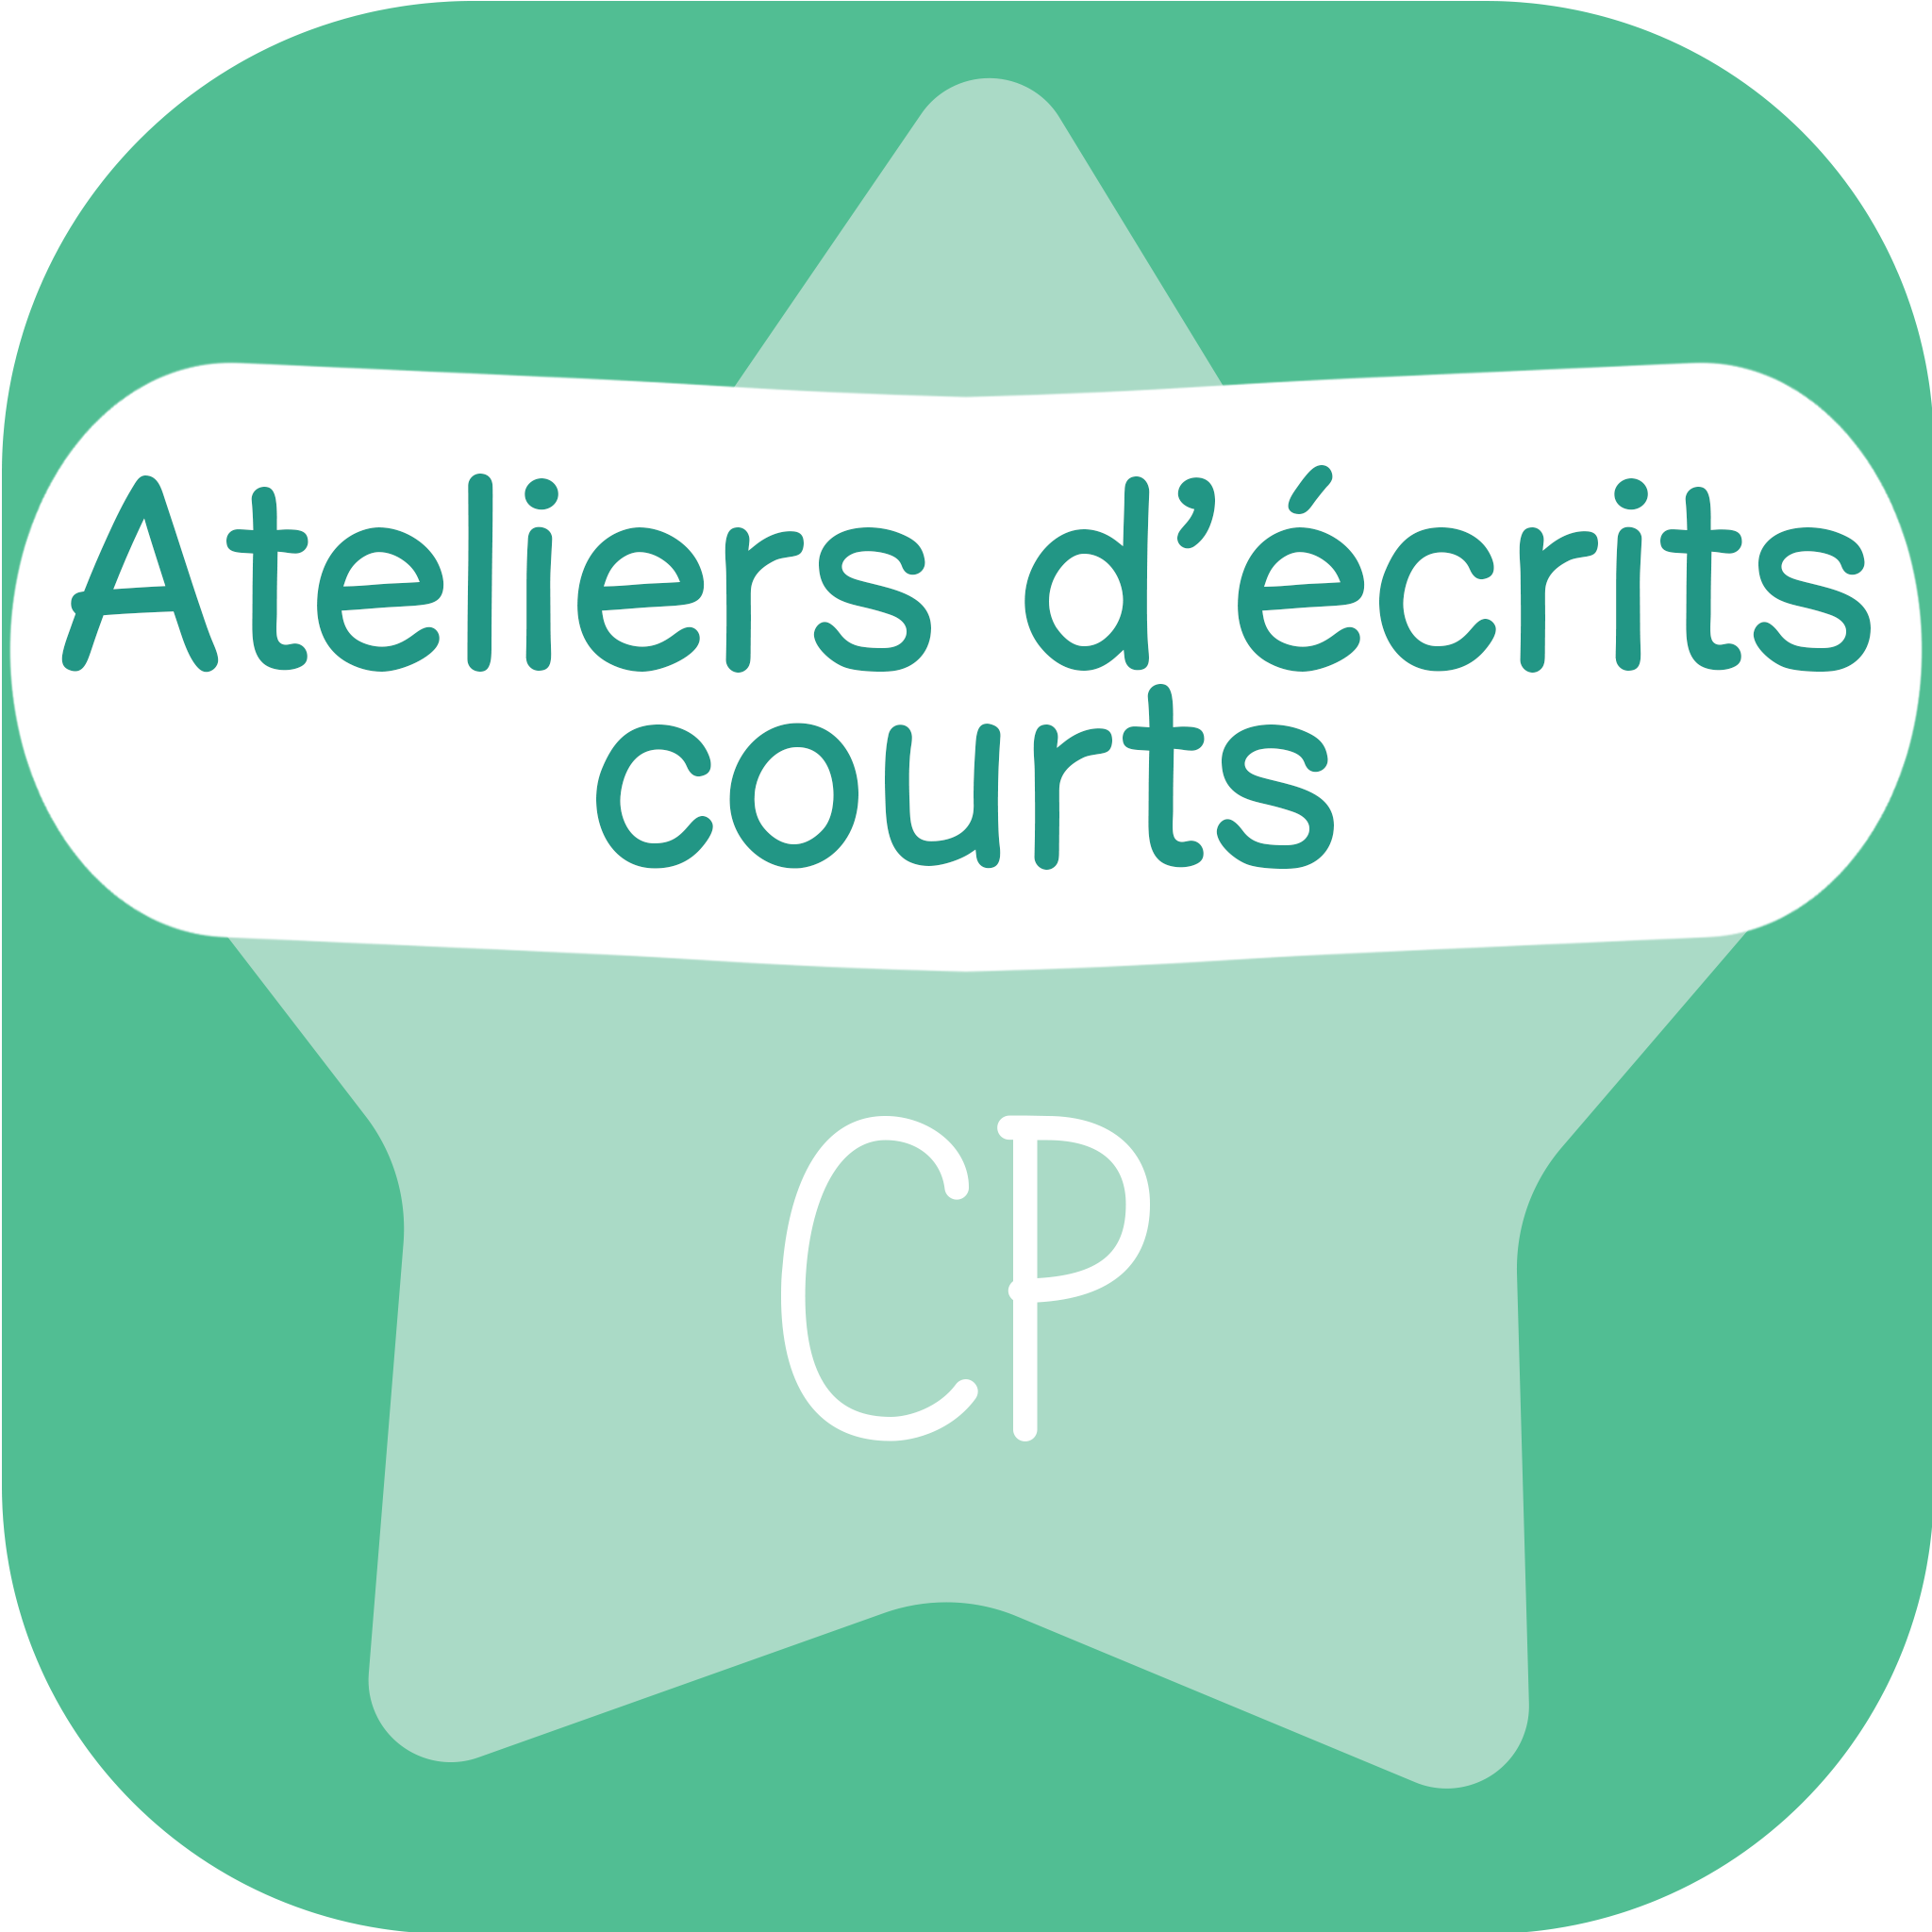 5033 ATELIERS ECRITS COURTS CP app icon V2-2 2048 FINAL.png